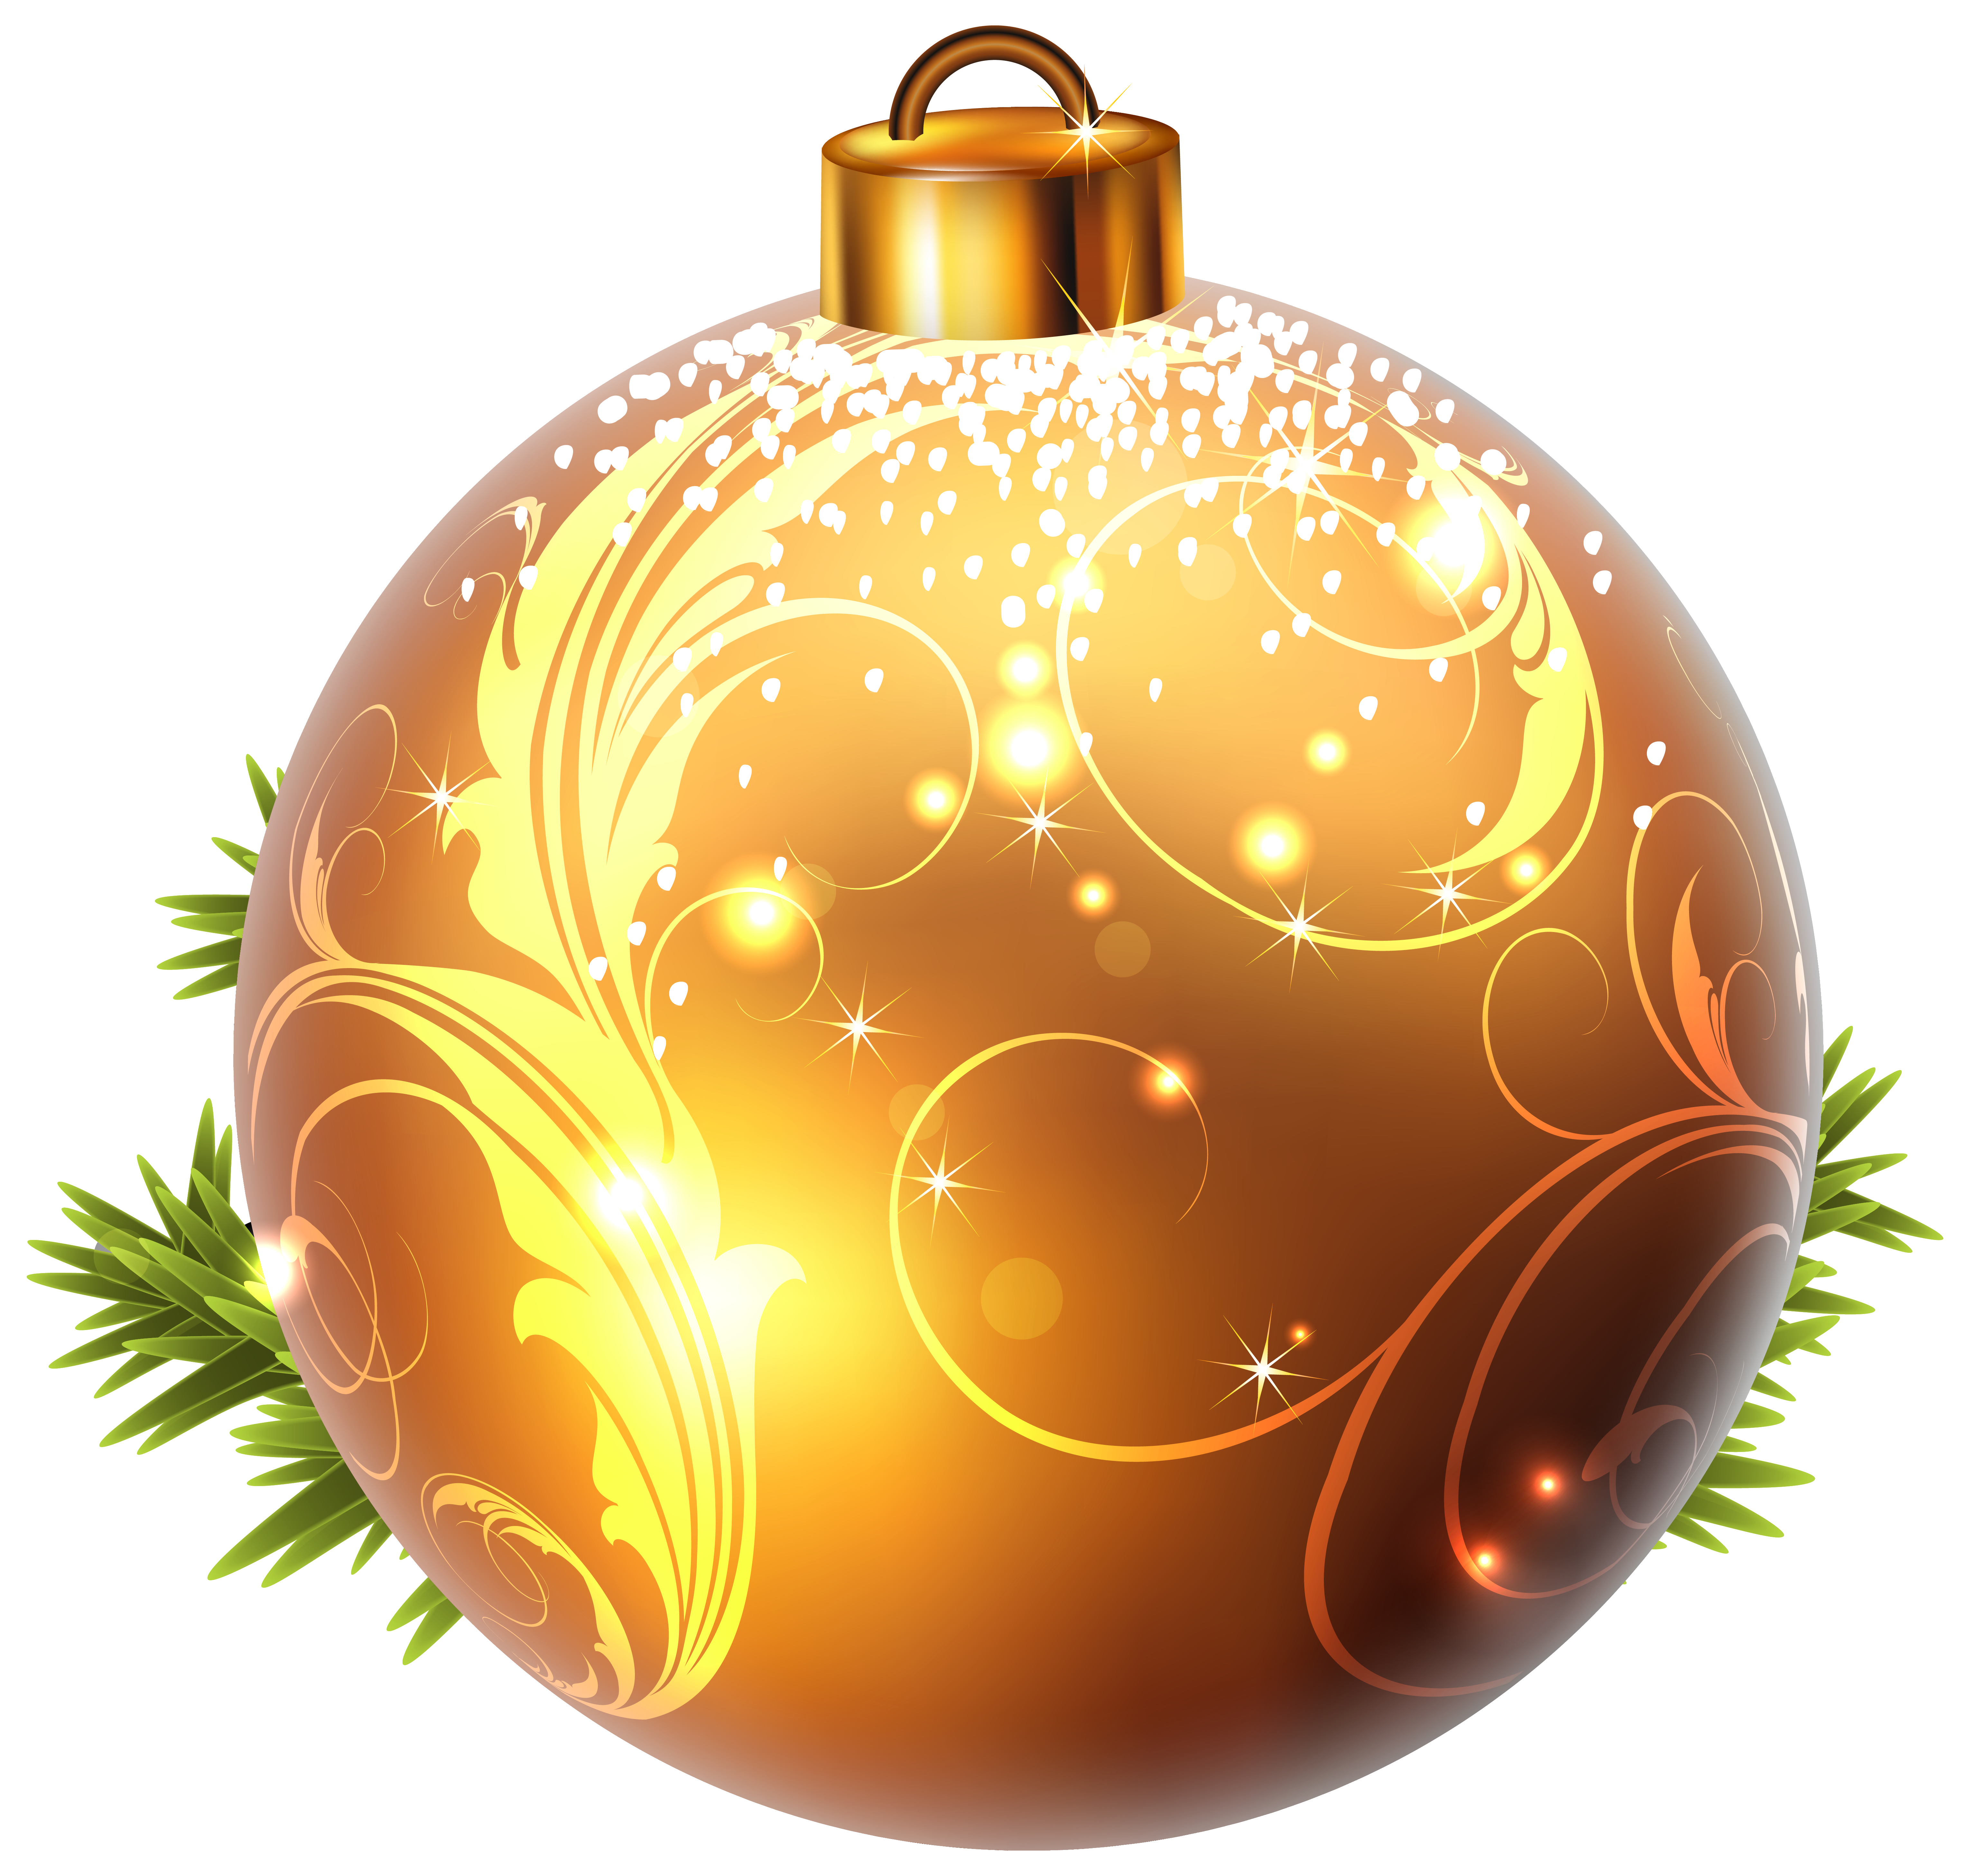 Yellow Christmas Ball Png Clipart Image Gallery Yopriceville High Quality Images And Transparent Christmas Gift Clip Art Christmas Balls Orange Christmas